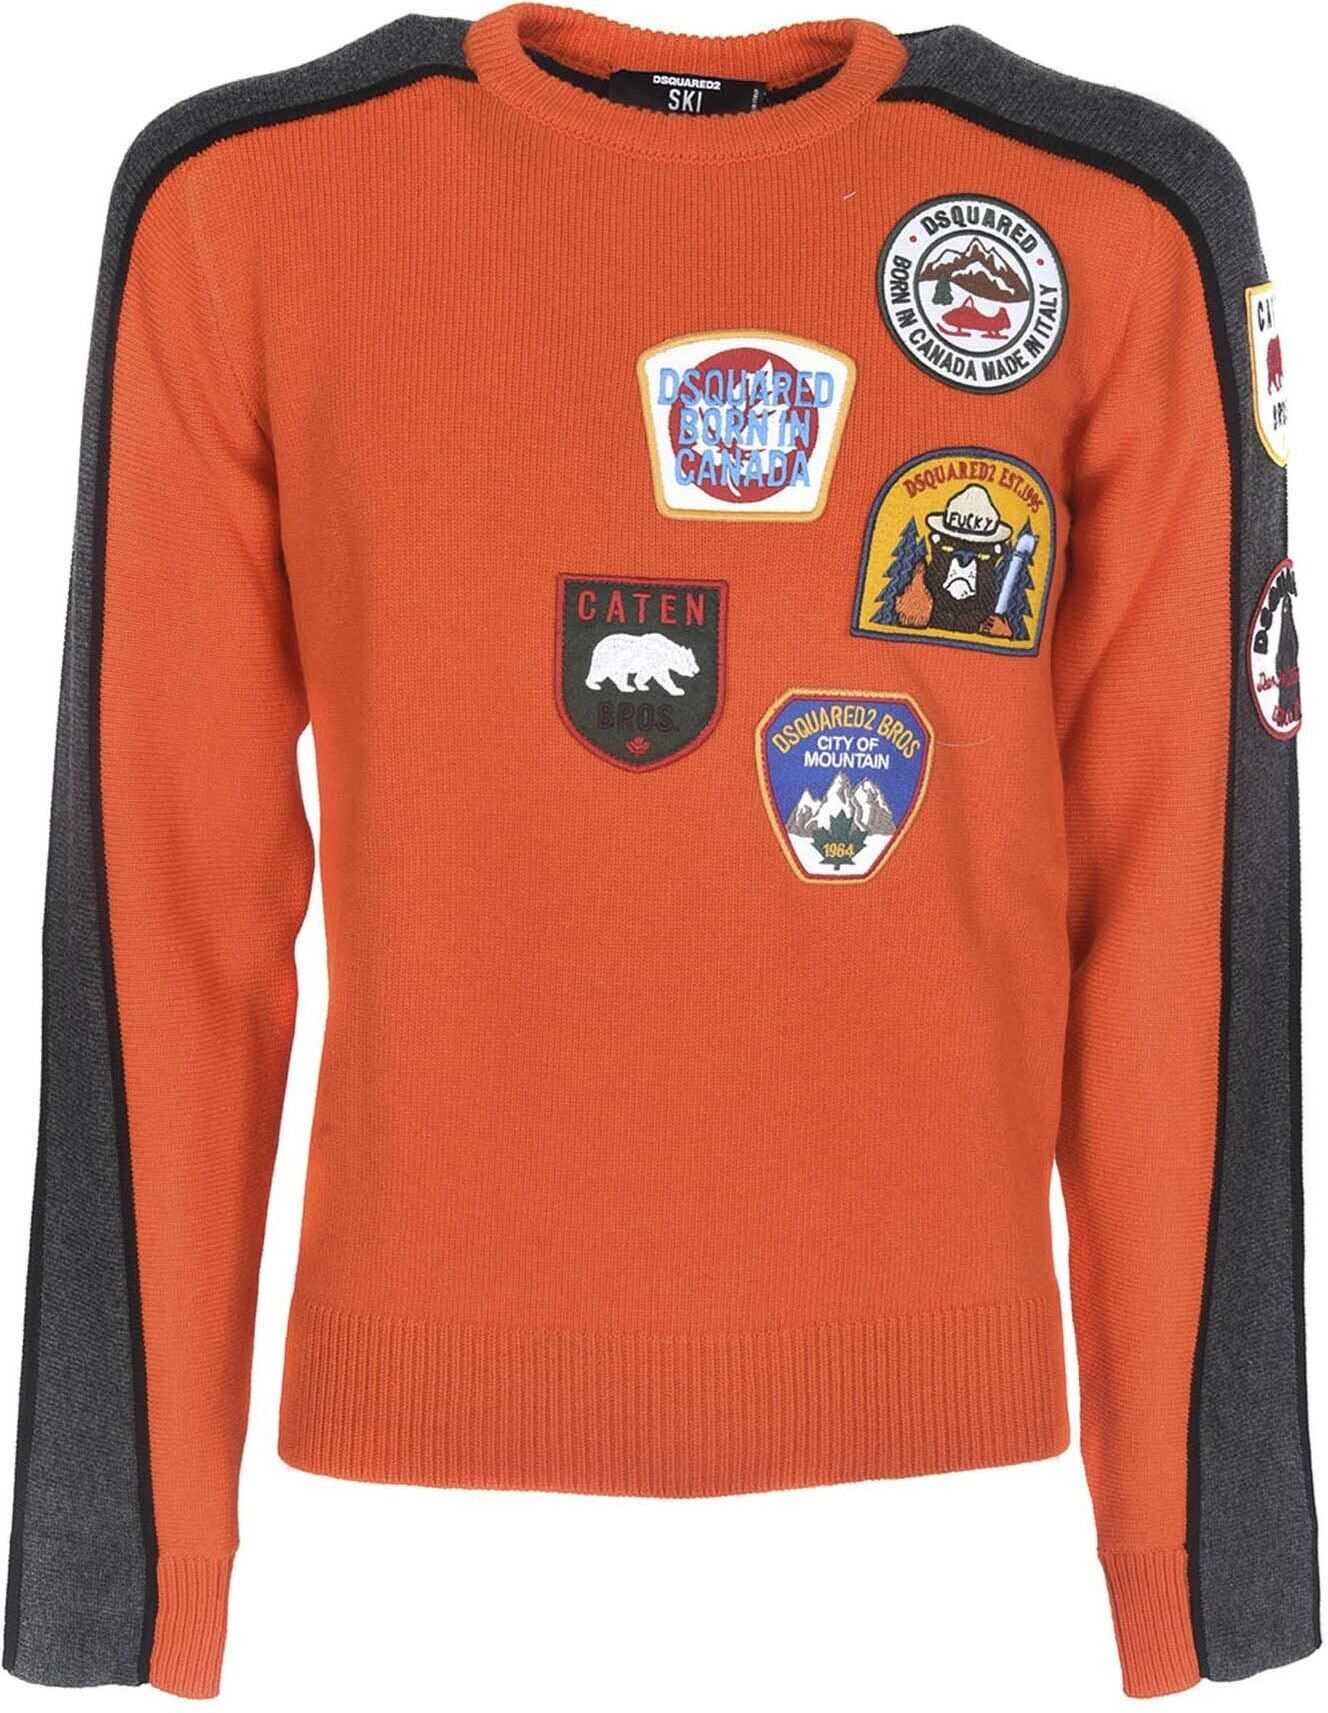 DSQUARED2 Pullover With Patch In Orange Color Orange imagine